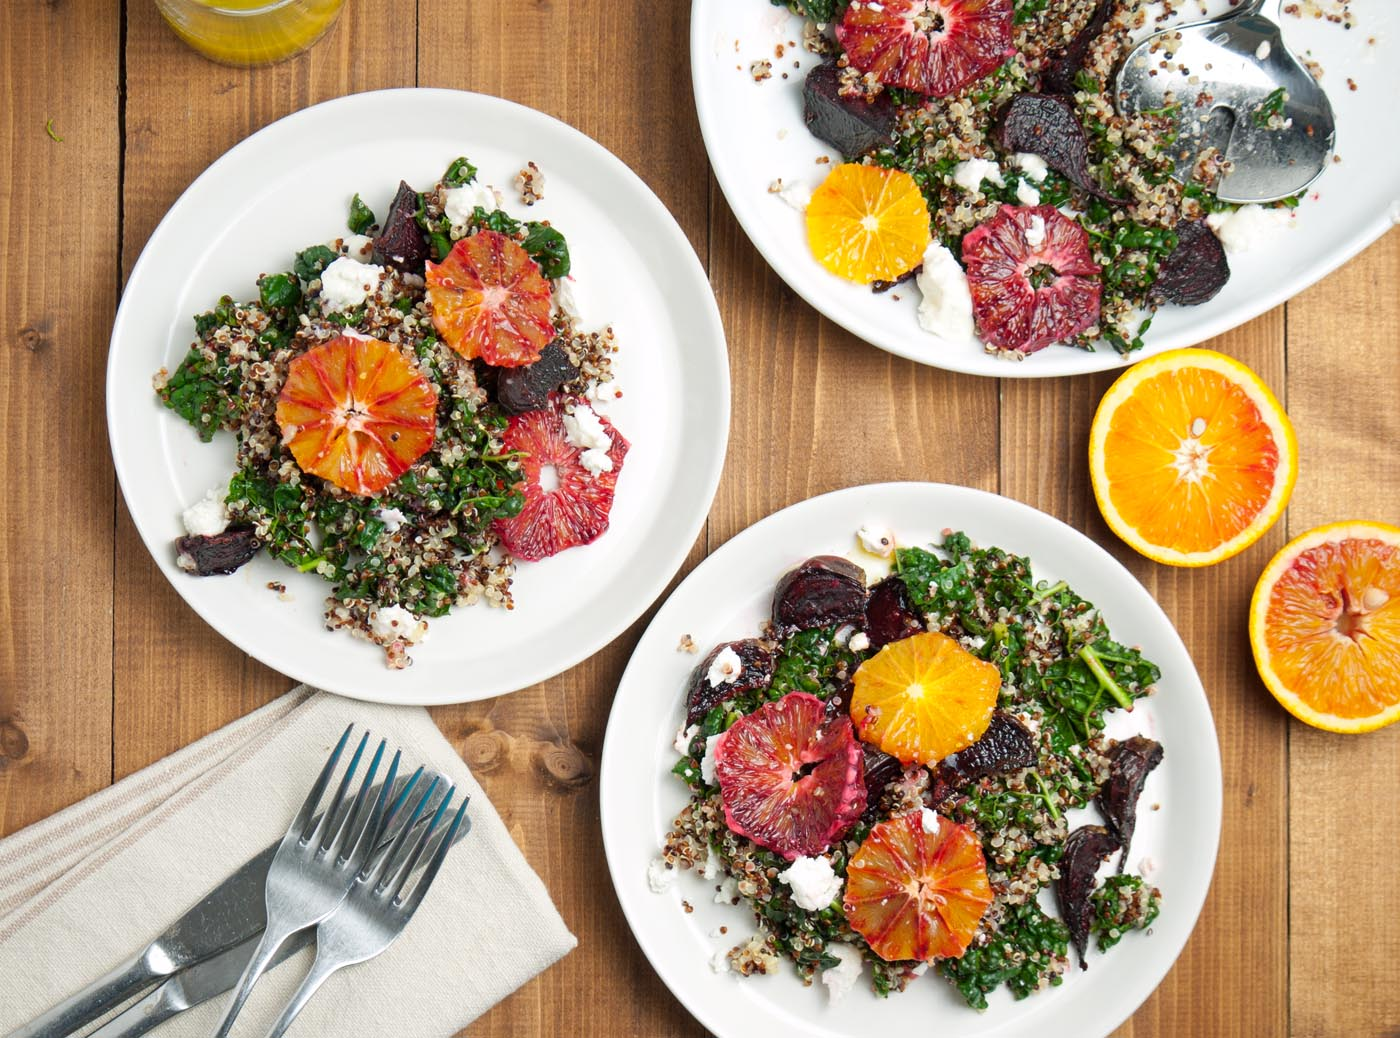 Kale, Blood Orange, Beetroot & Quinoa Salad